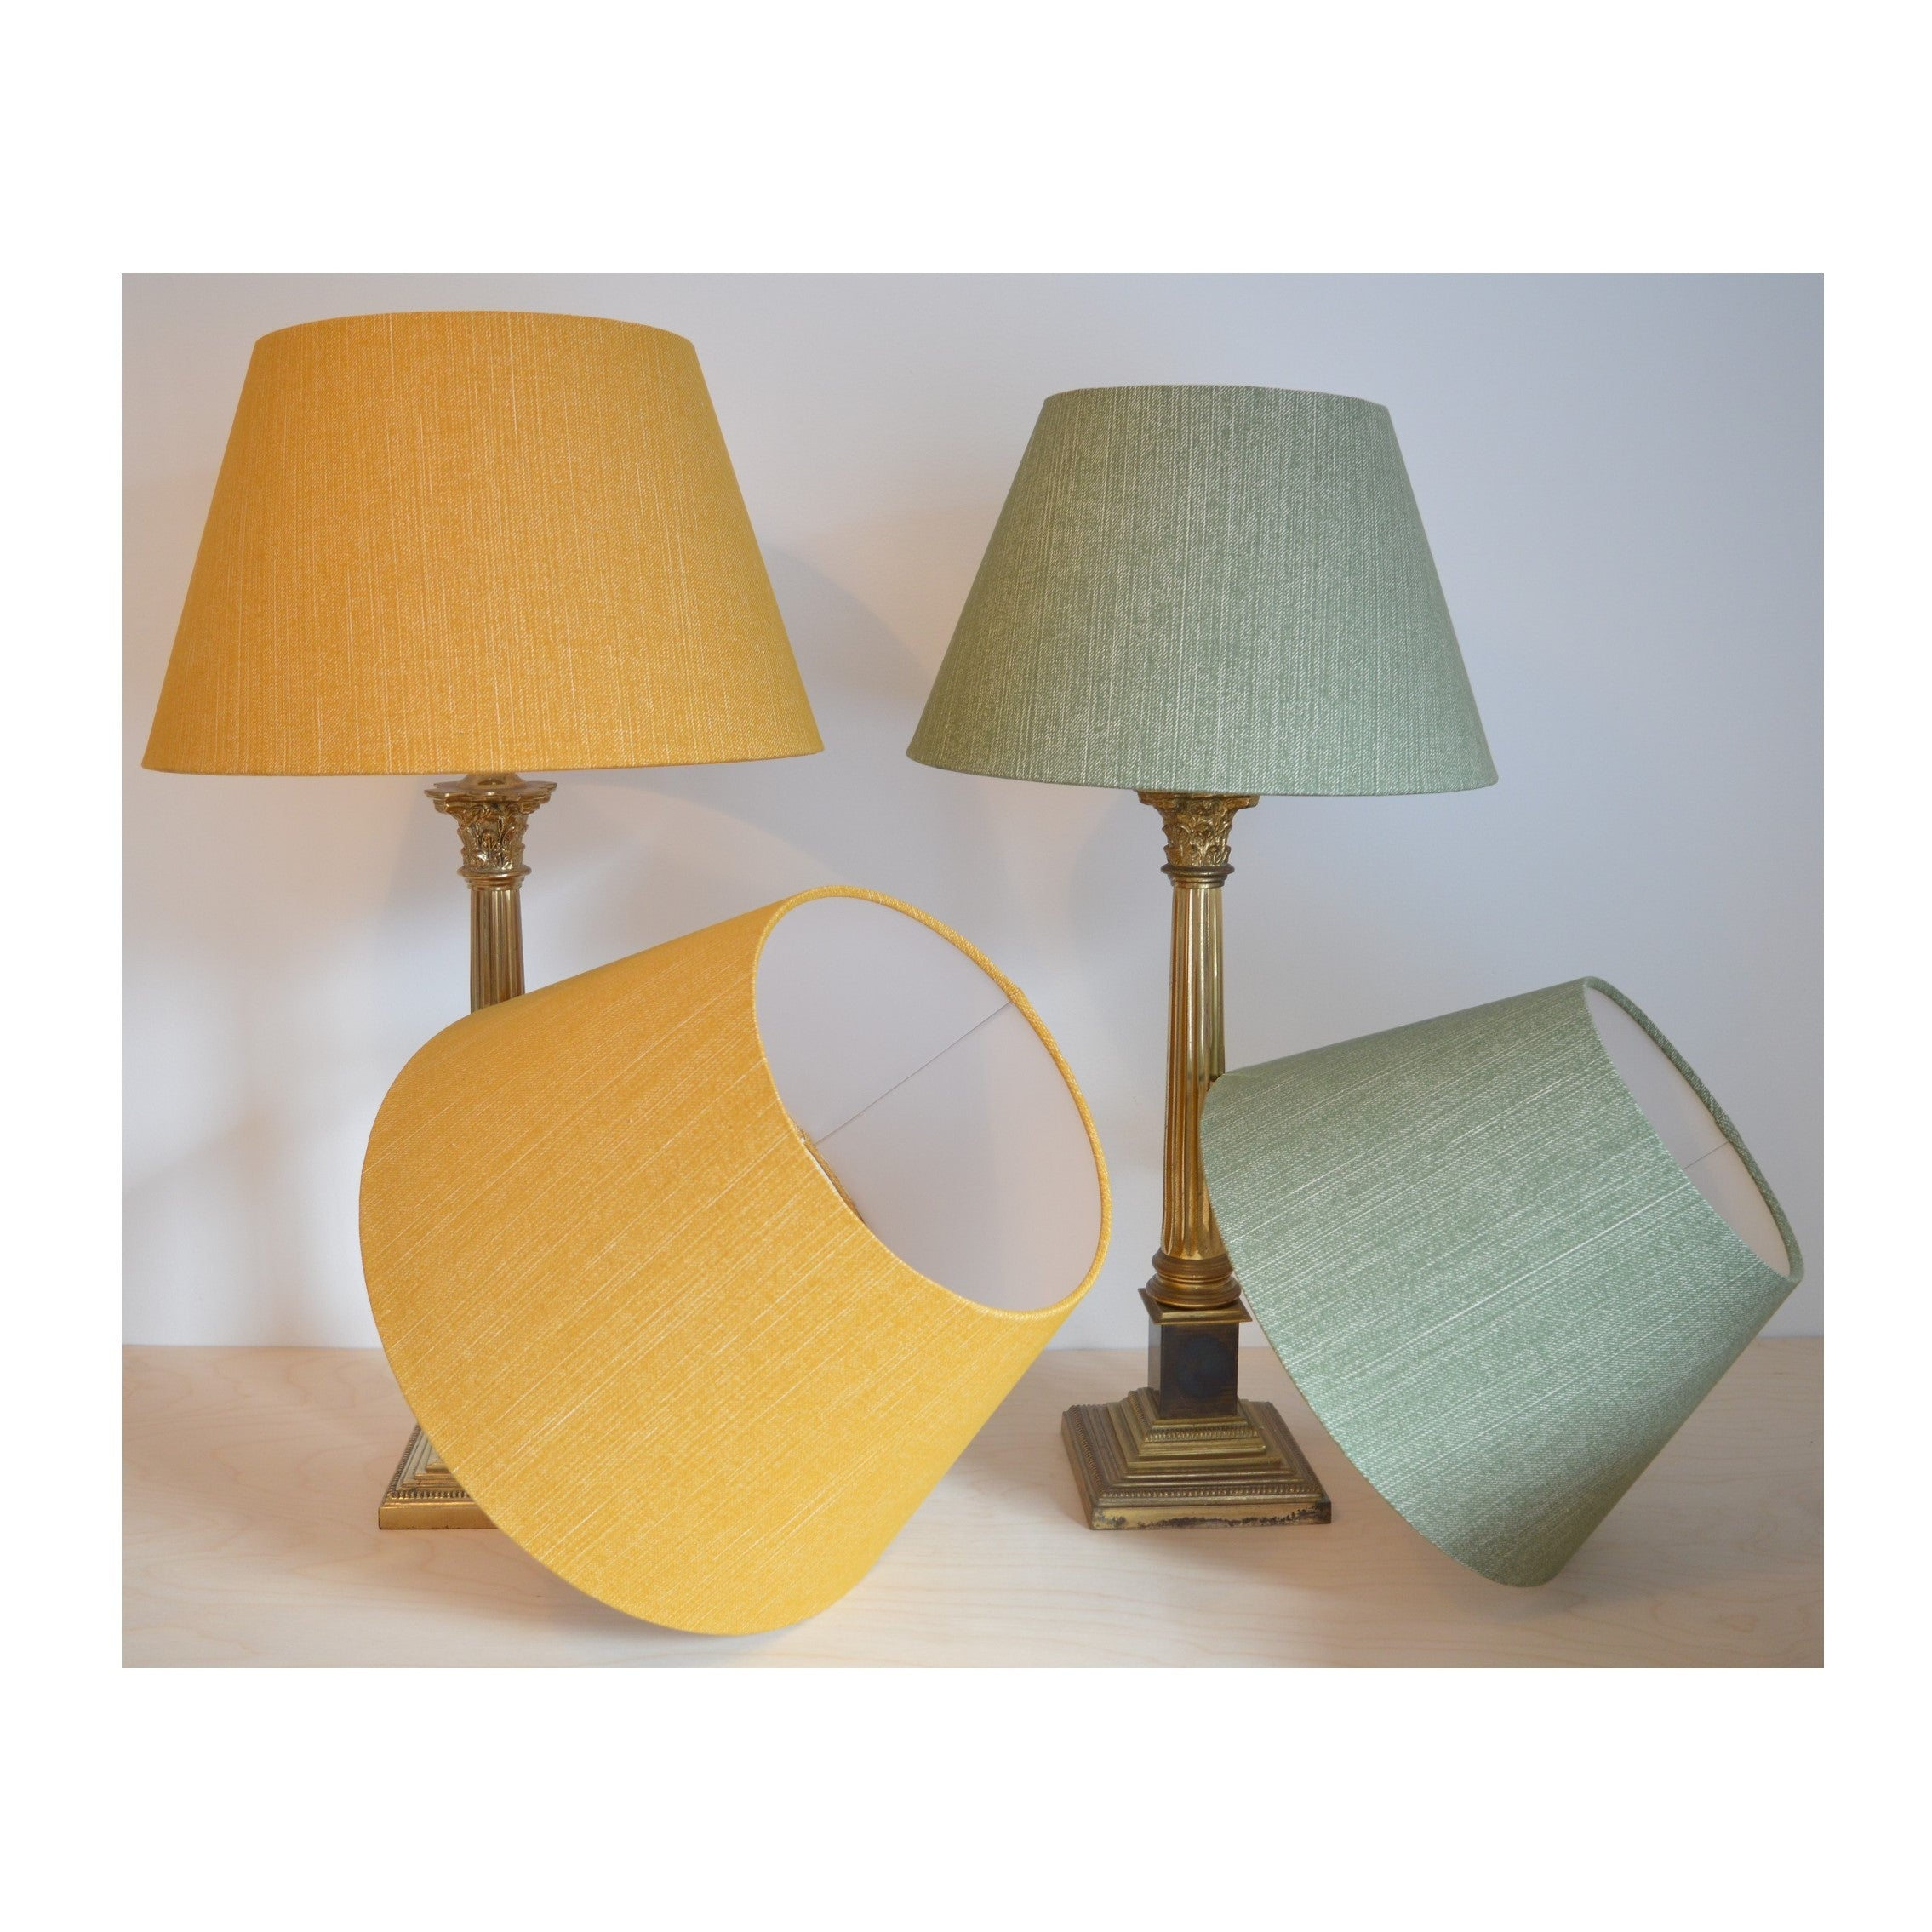 Munro and Kerr customers own material linen empire lampshade